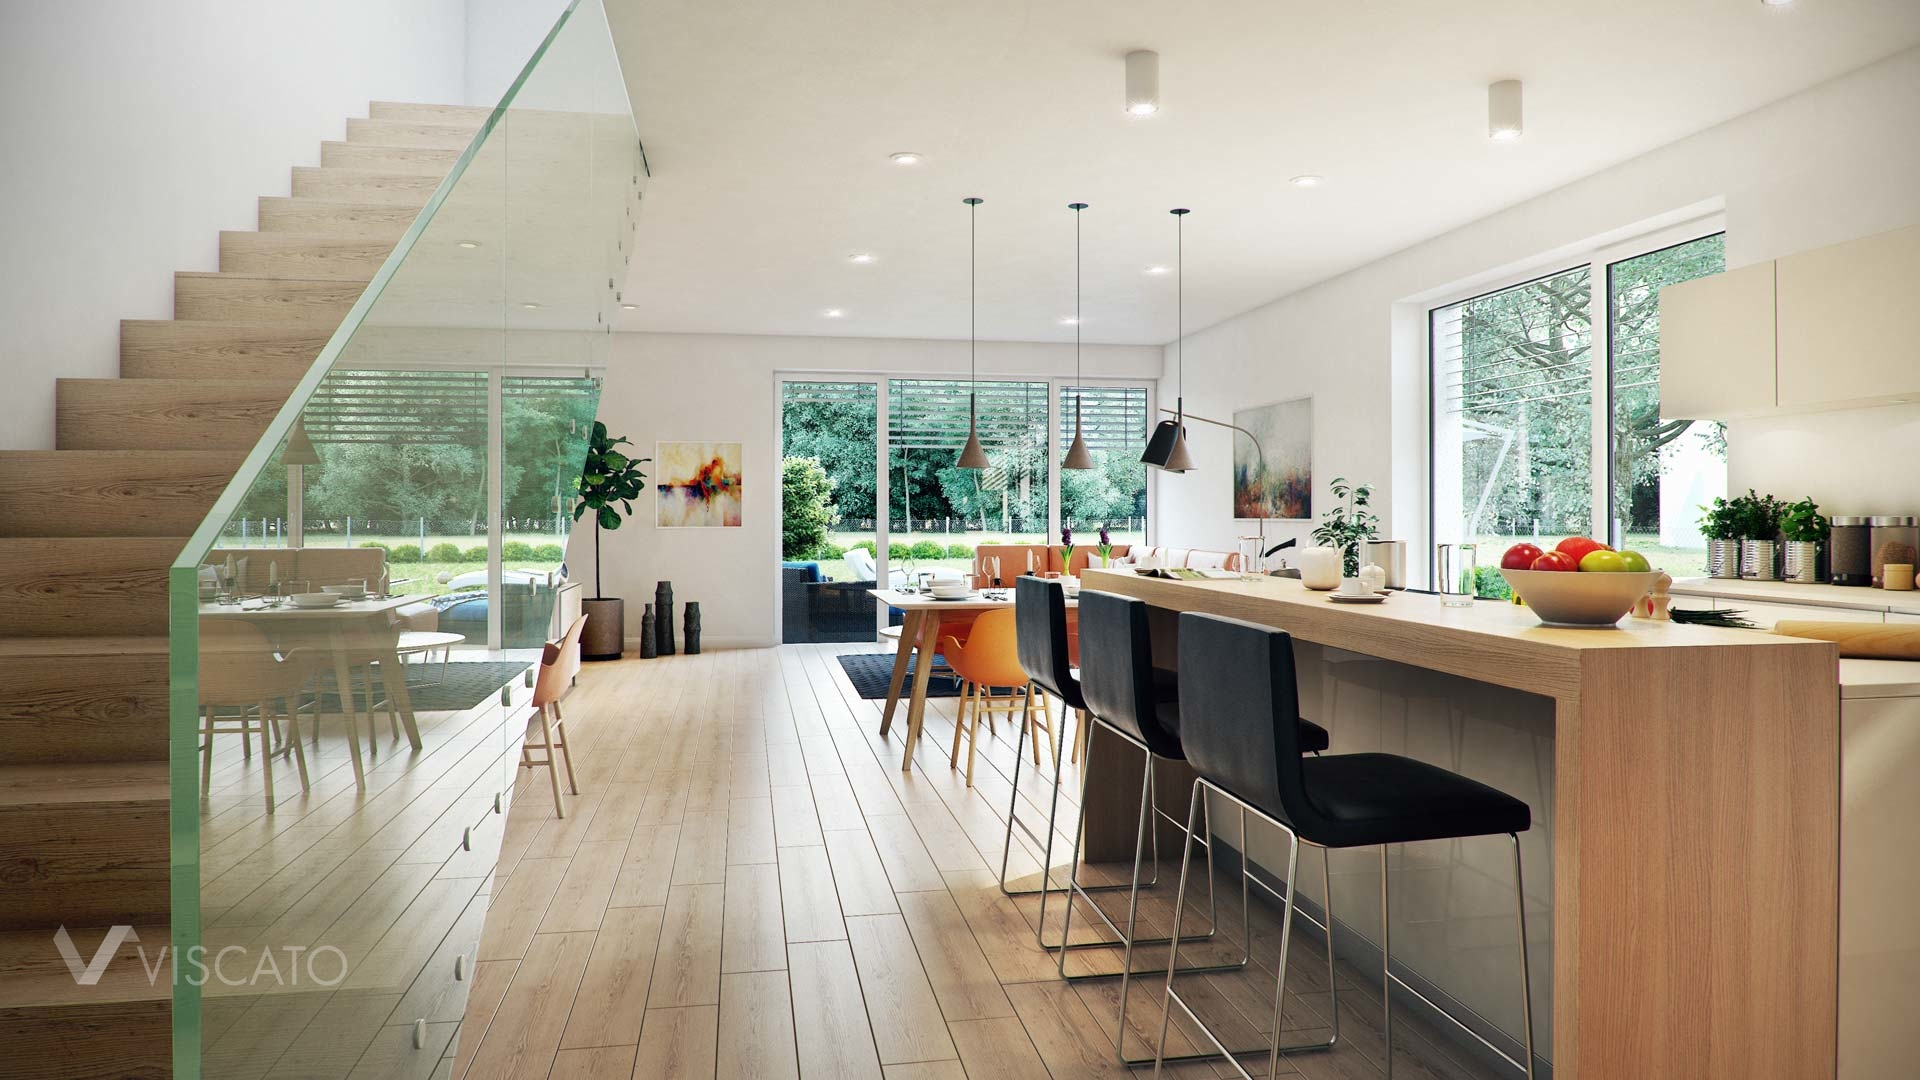 Linz twin house interior visualization view on stairs and kitchen